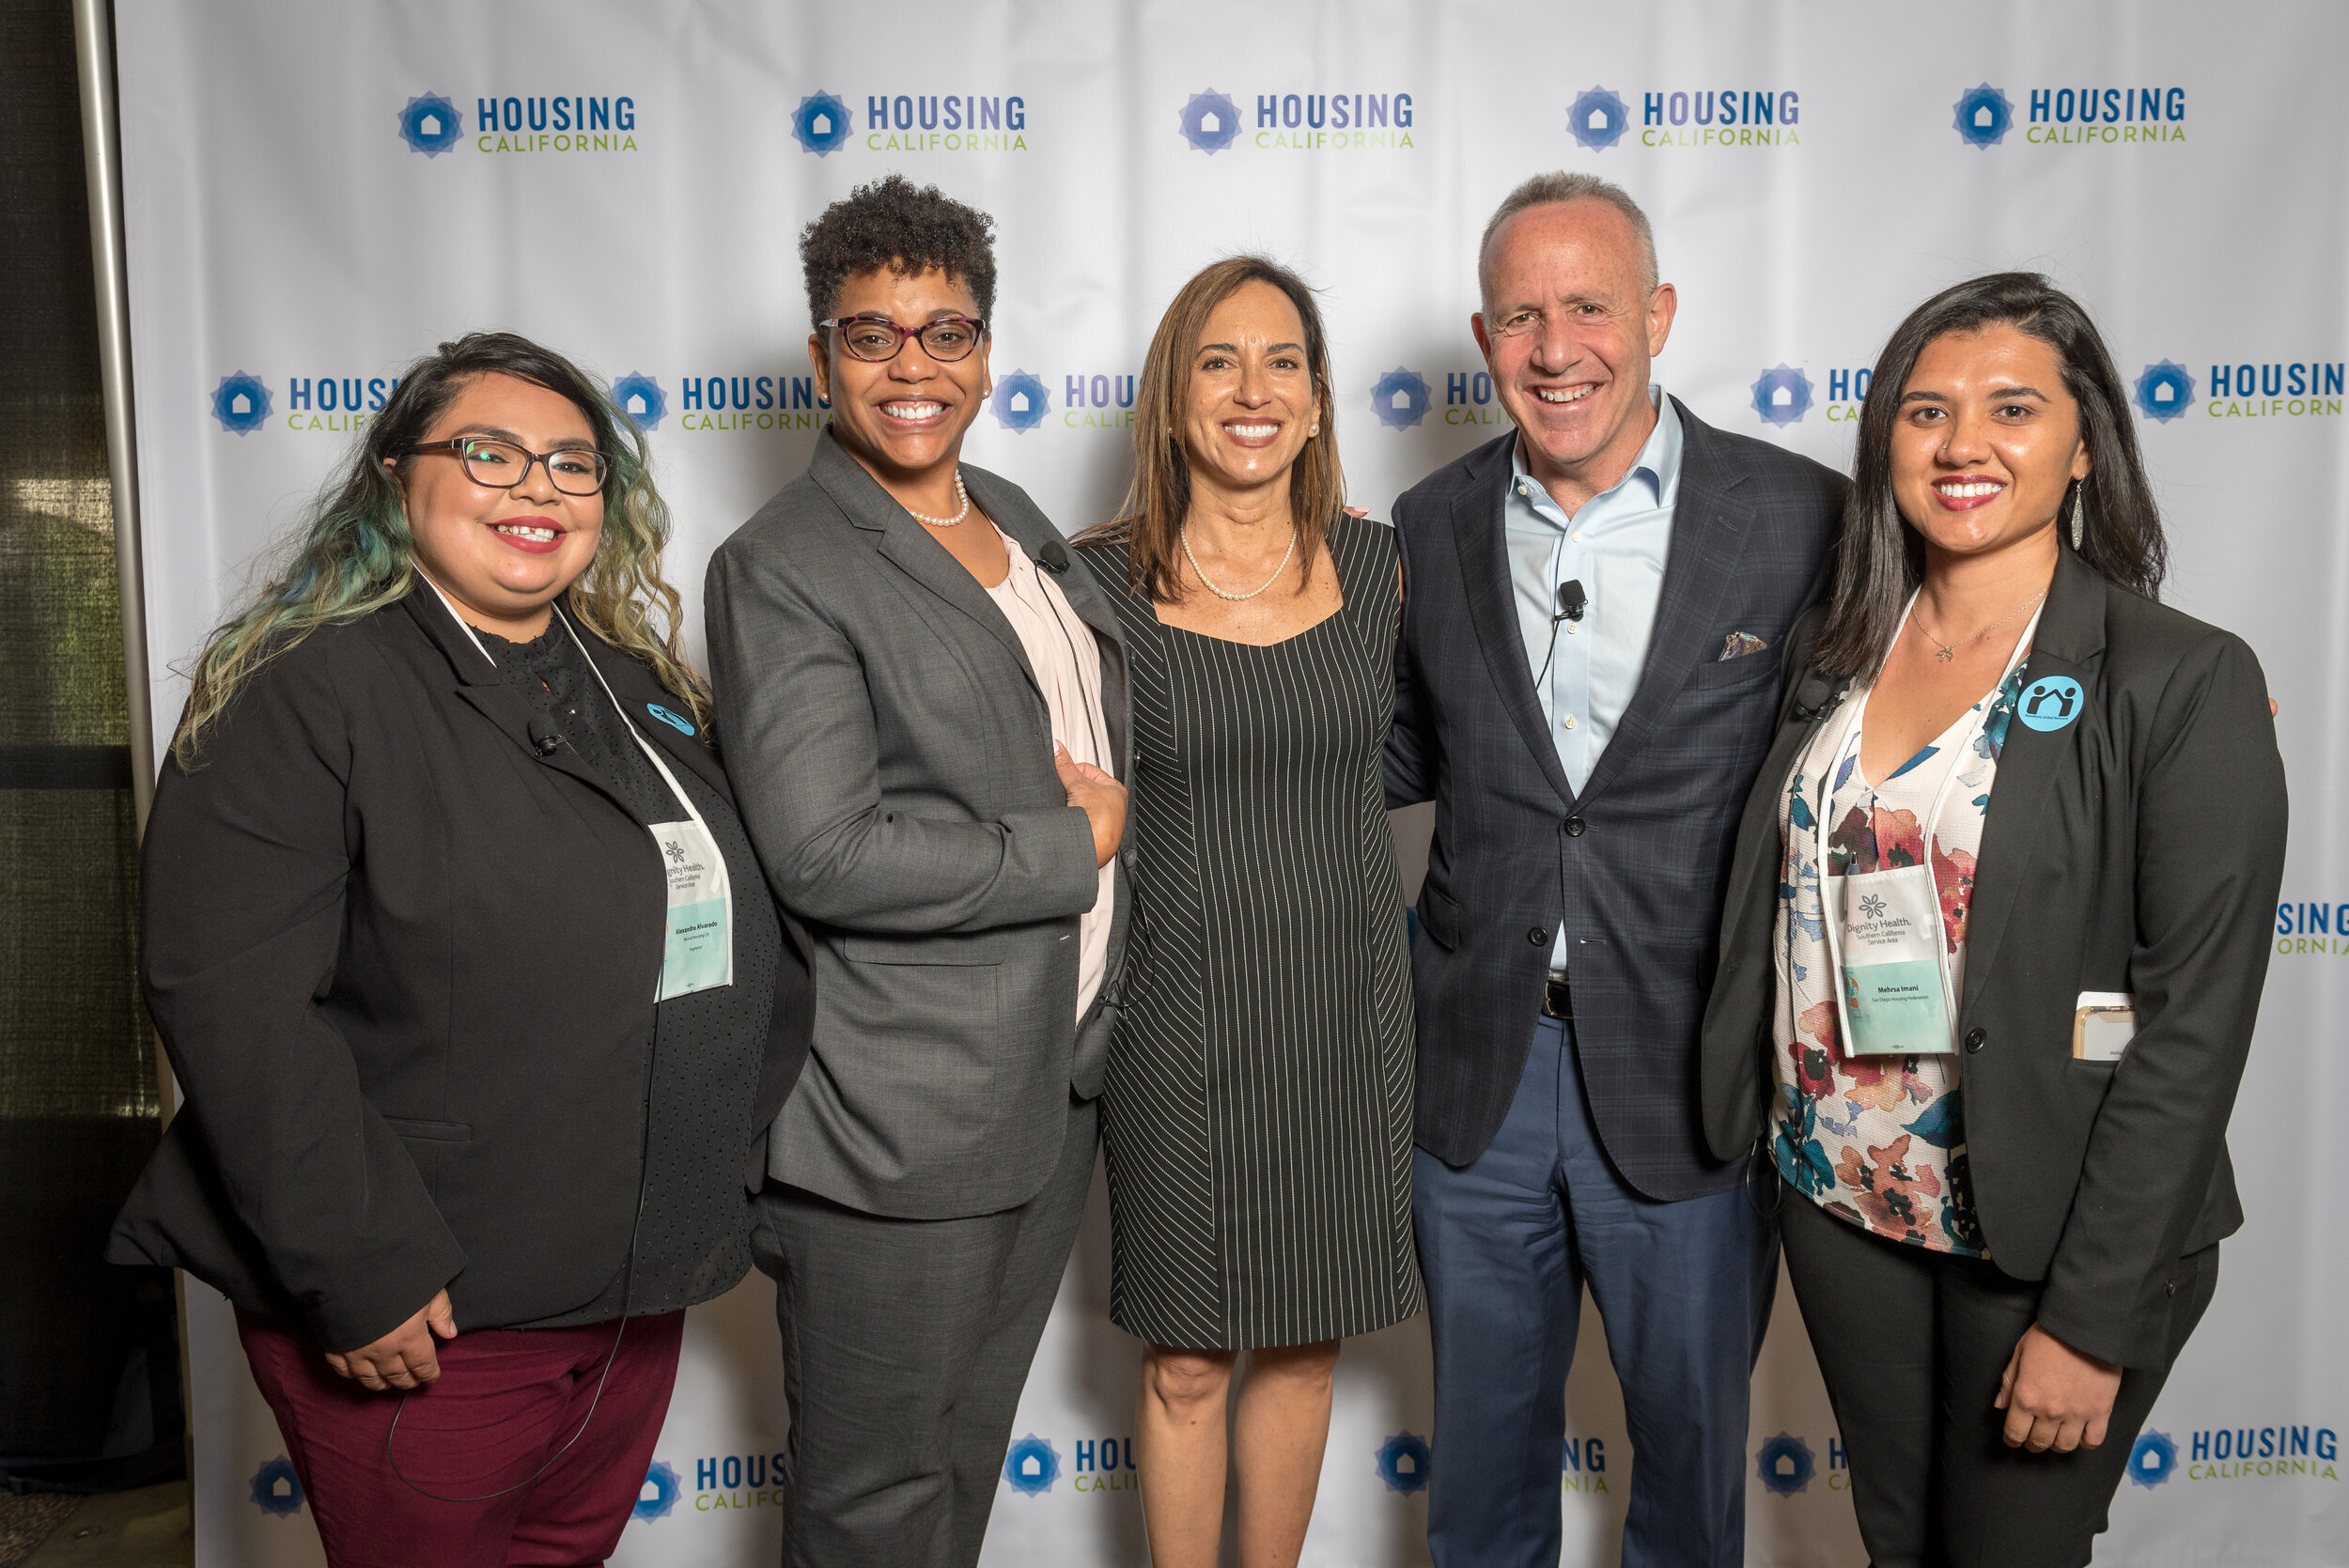 Mehrsa Imani with keynote speakers at Housing California Conference, April 2019.